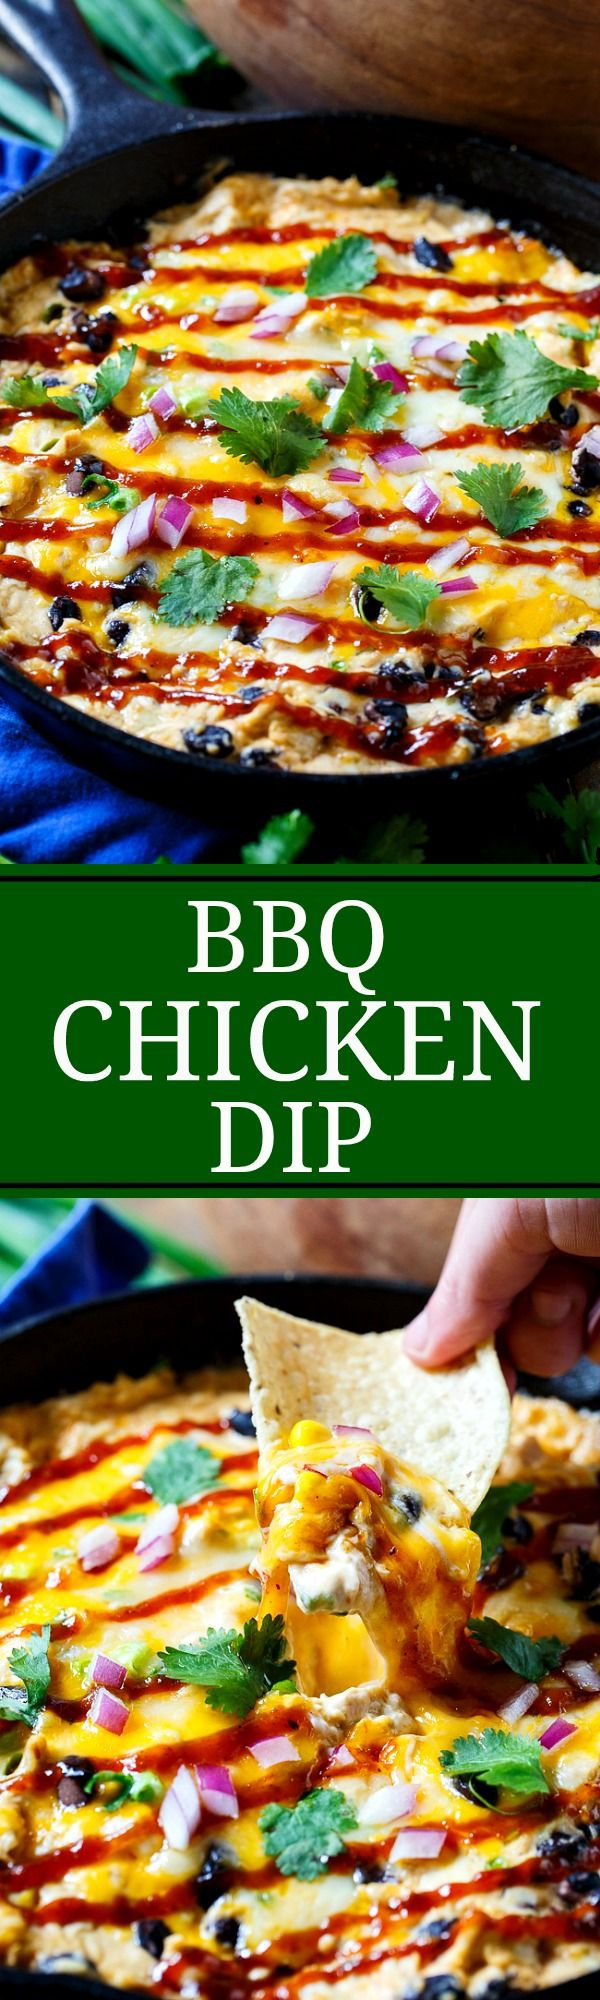 BBQ Chicken Dip- a creamy, warm dip with the flavor of BBQ Chicken Pizza.